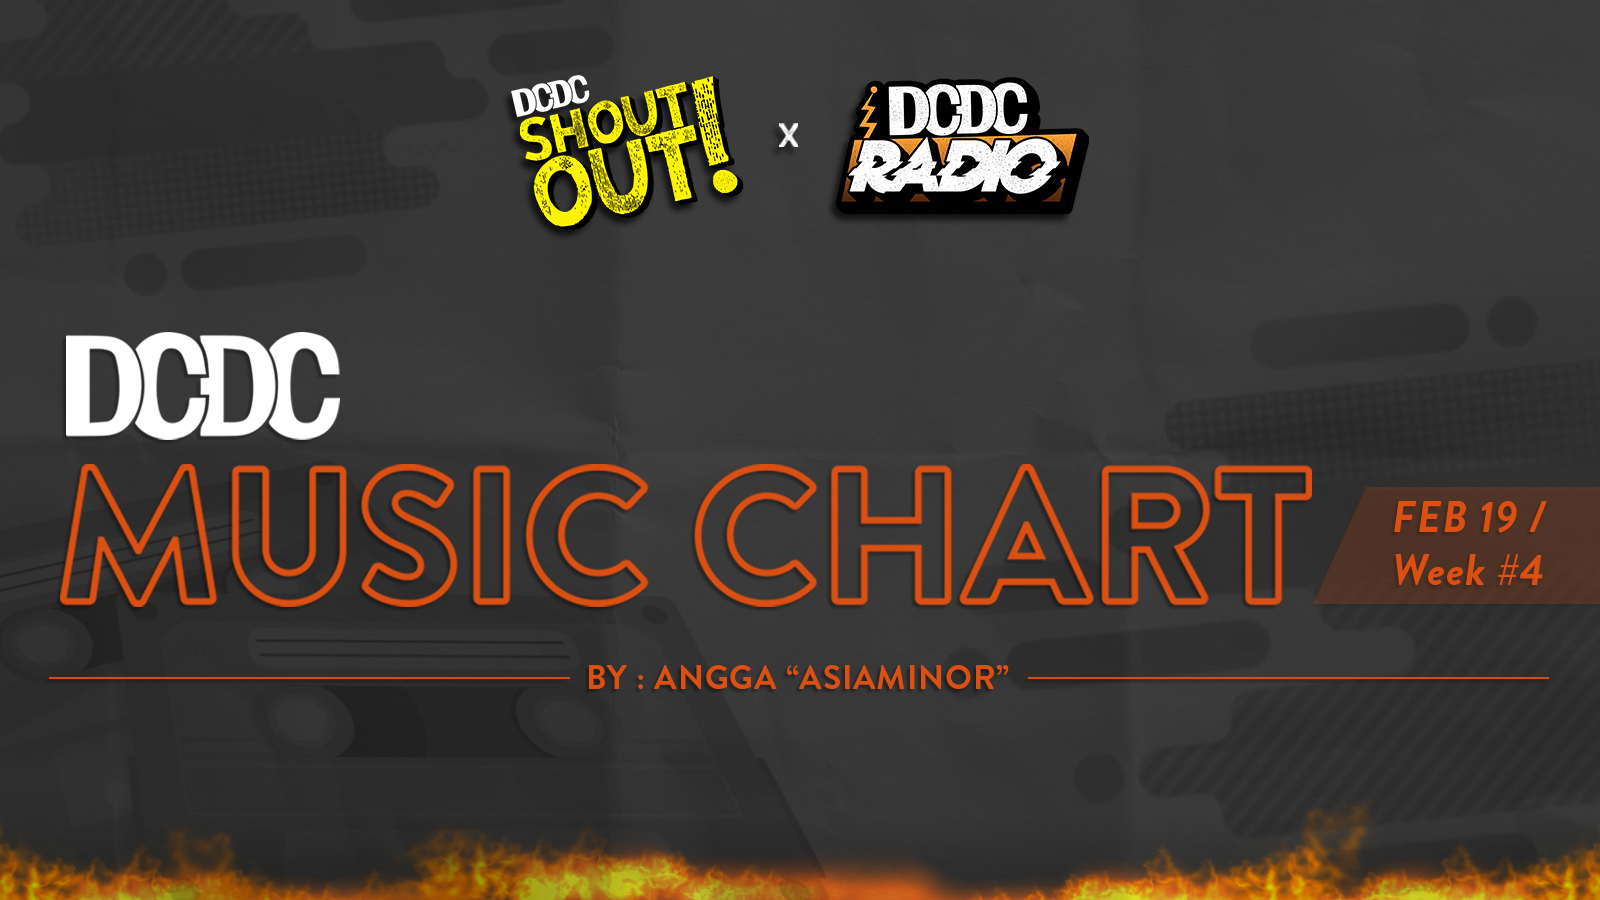 DCDC Music Chart - #4th Week of February 2019